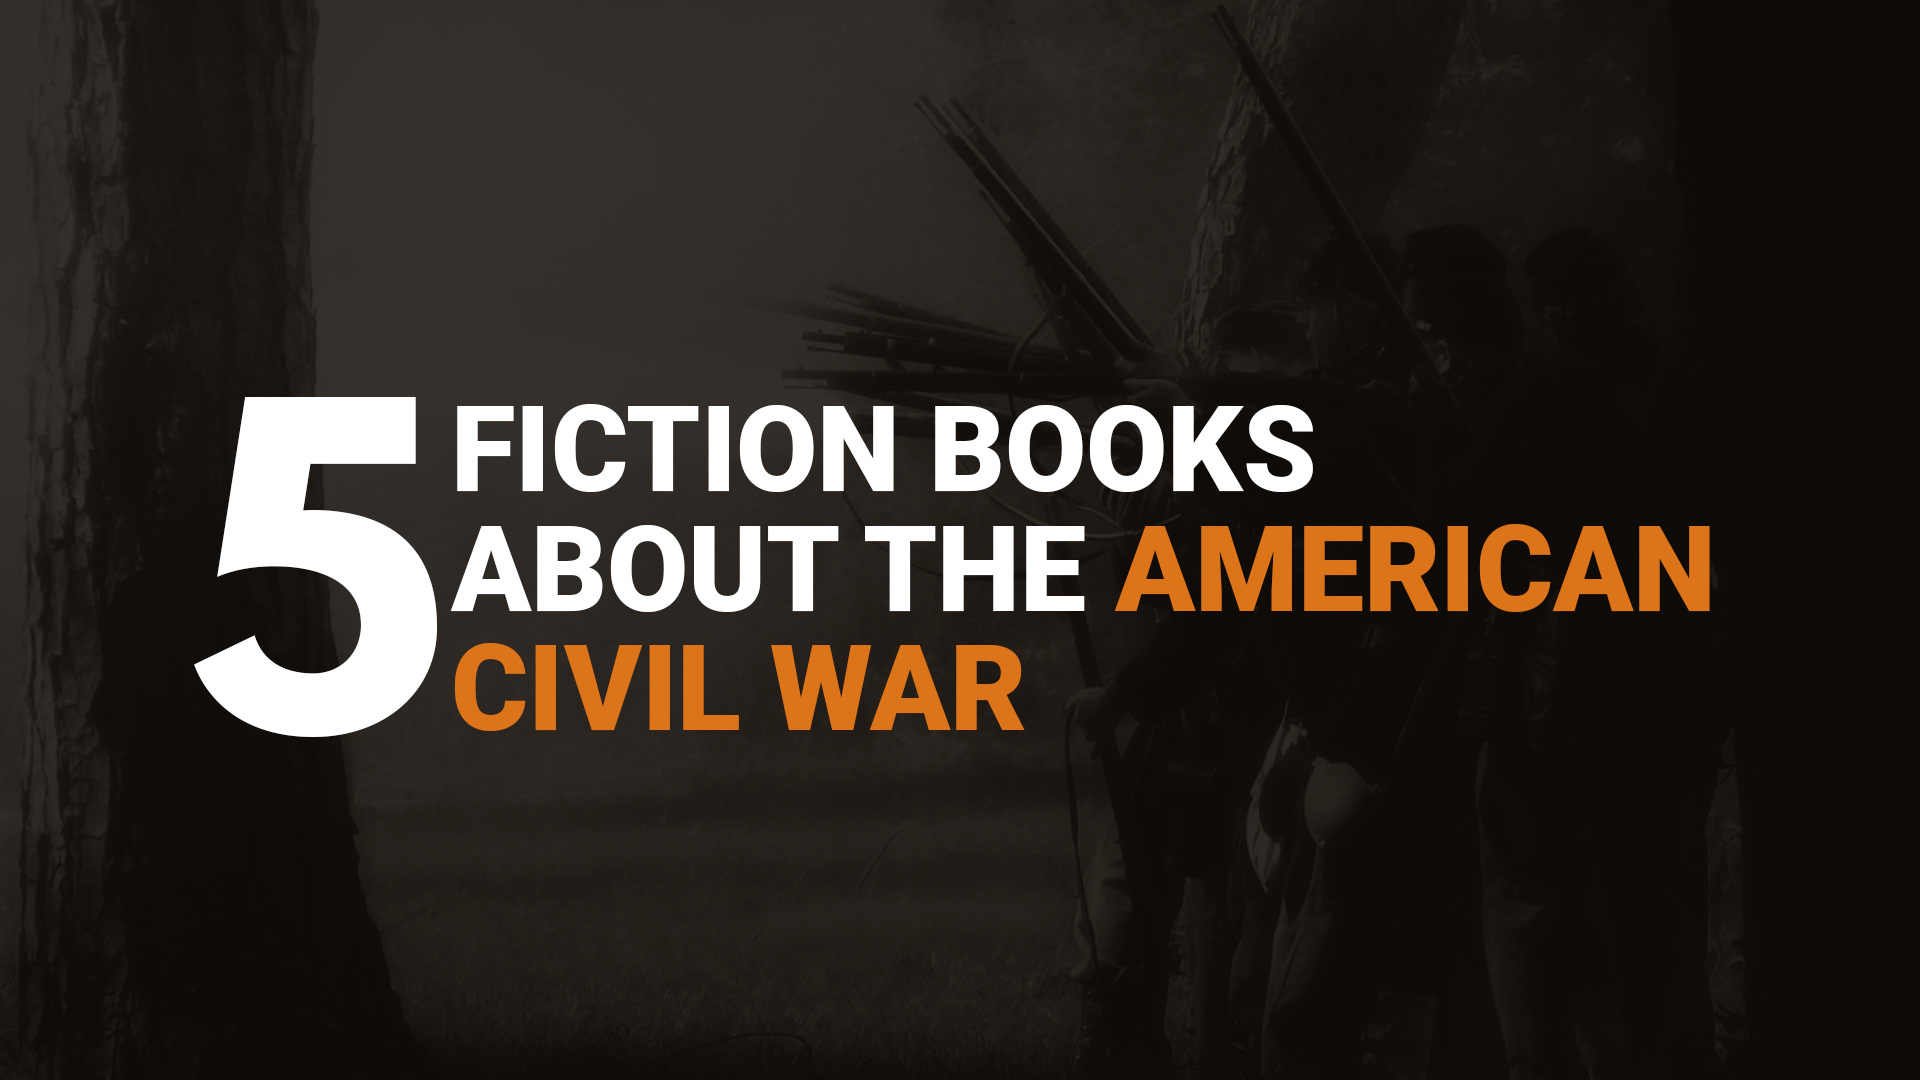 Five Fiction Books About the American Civil War banner